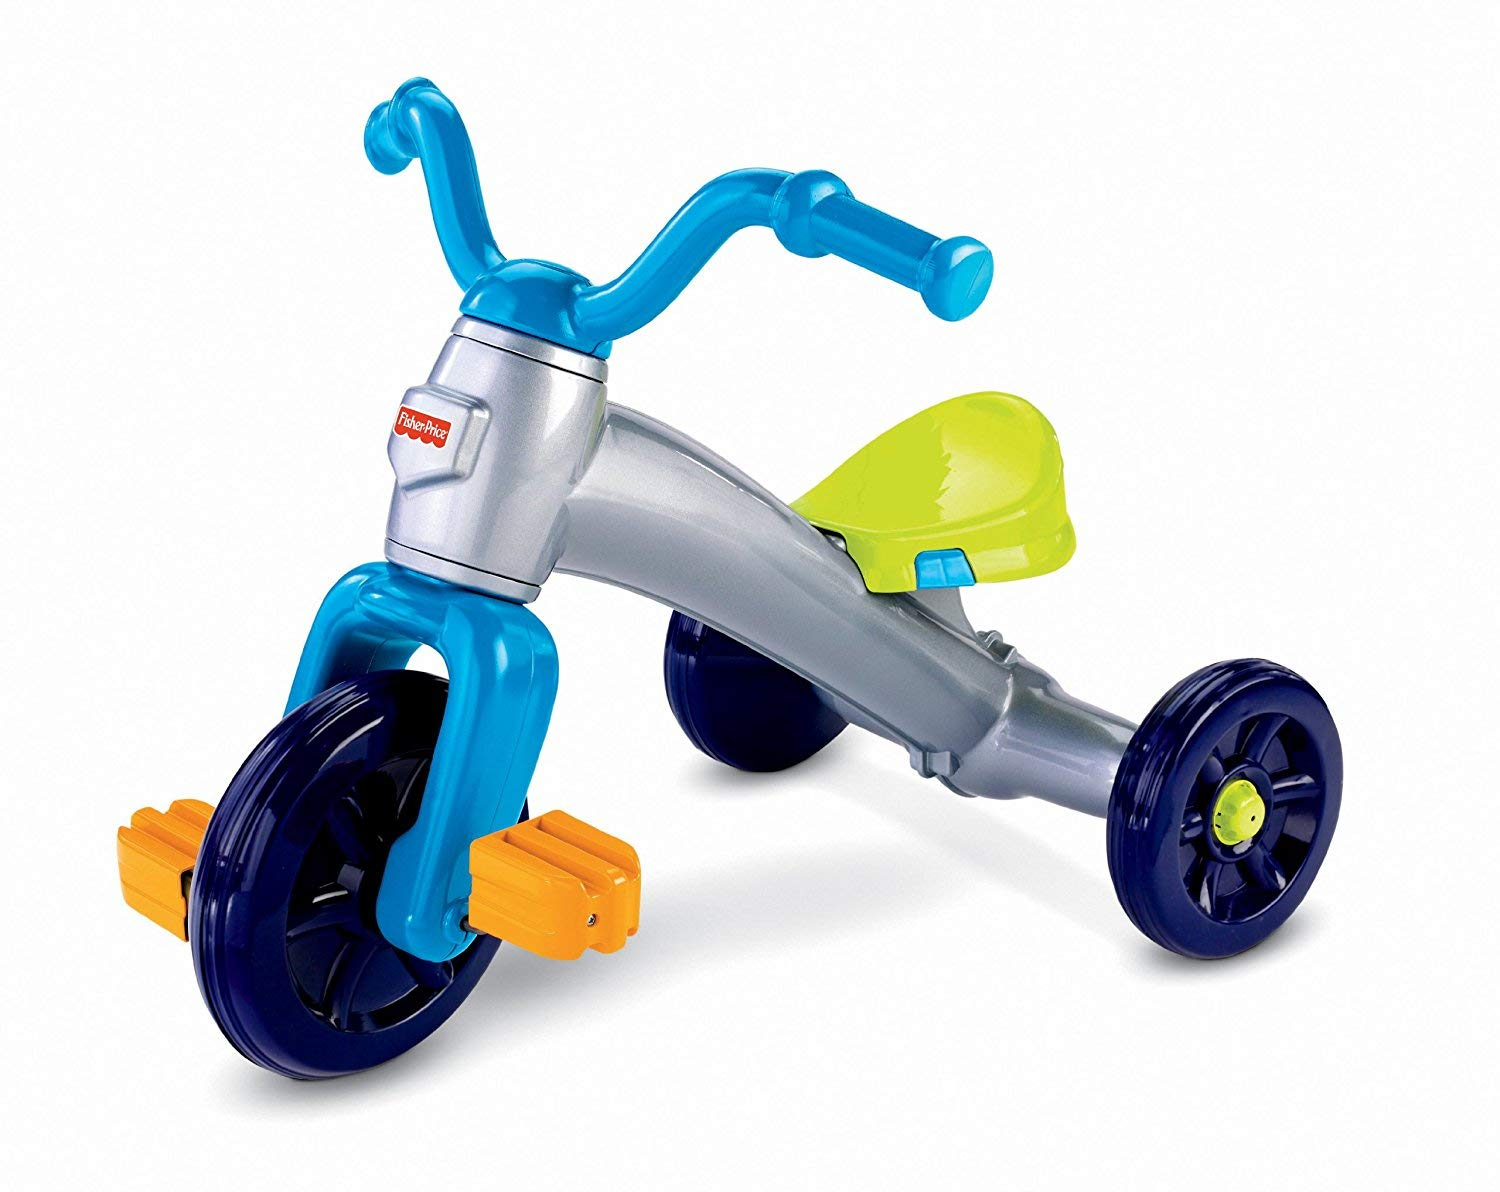 Top 10 Best Tricycle For Toddlers Reviews in 2020 5